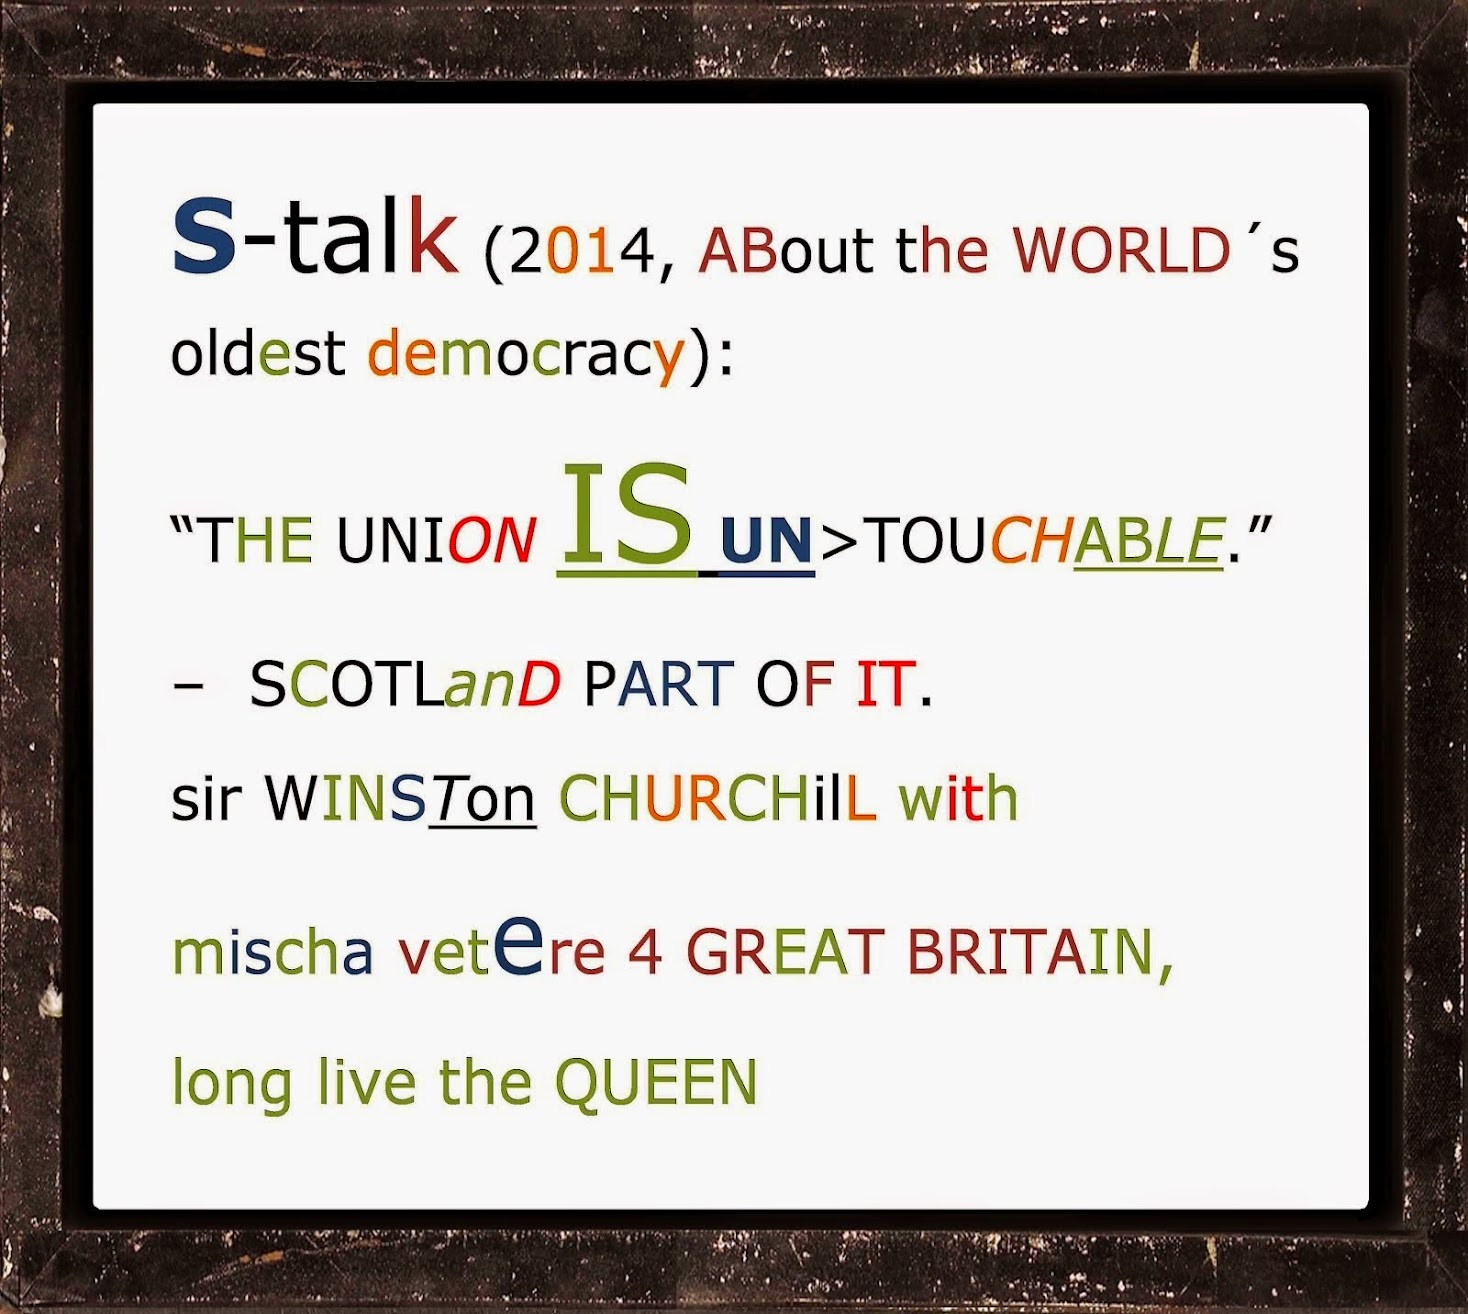 churchill UNION shakespeare QUEEN princes of wales UK scotland TMR mischa vetere LRM cyberwar DGR